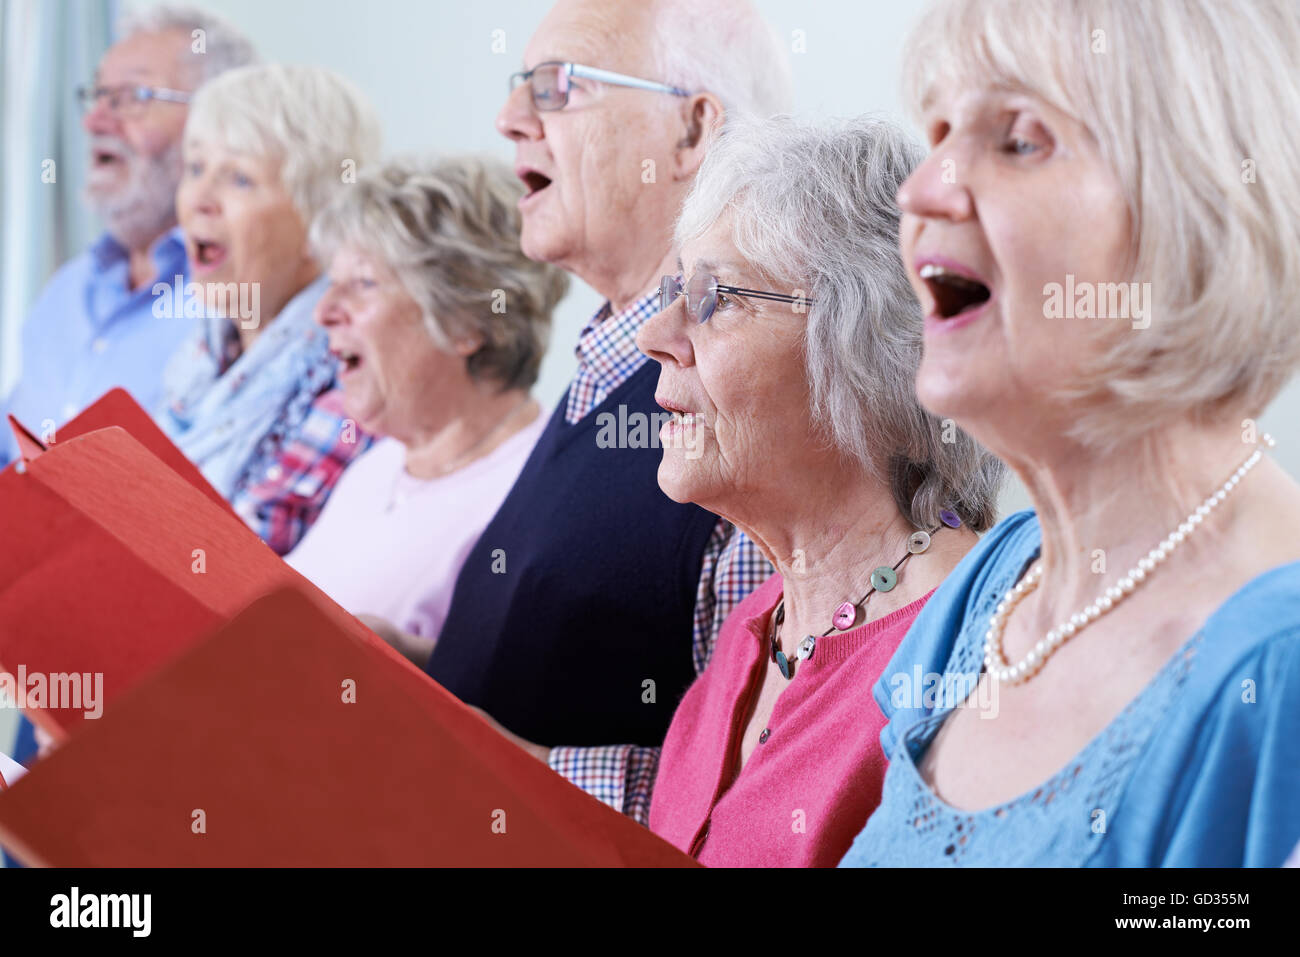 Group Of Seniors Singing In Choir Together - Stock Image